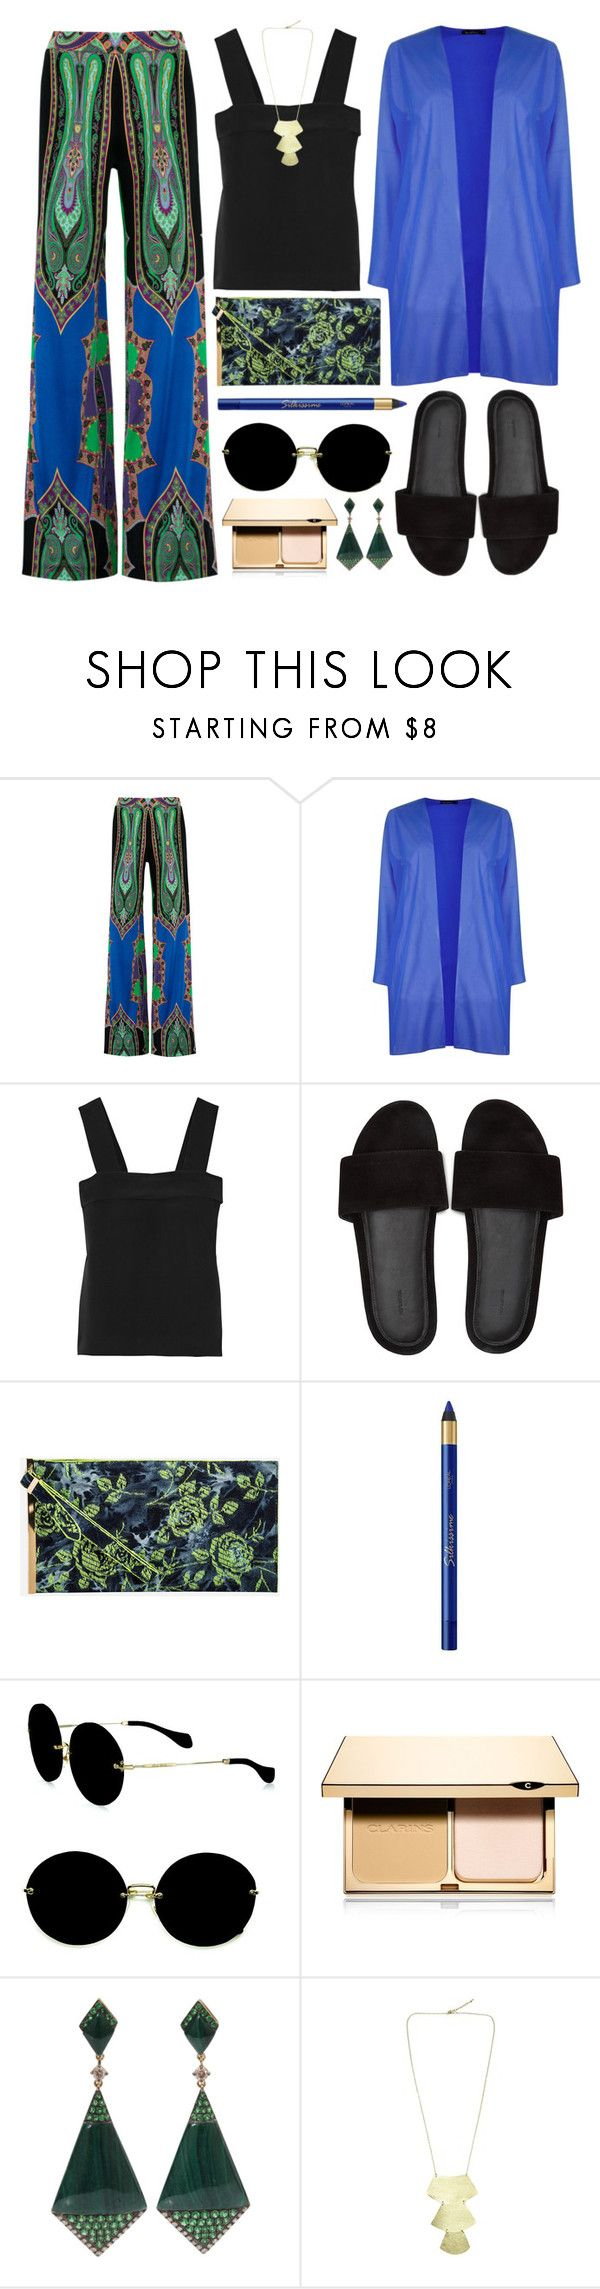 """""""humidity"""" by foundlostme ❤ liked on Polyvore featuring Etro, Boohoo, Joseph, Ashley Stewart, L'Oréal Paris, Miu Miu, Clarins, Wendy Yue and TropicalVacation"""